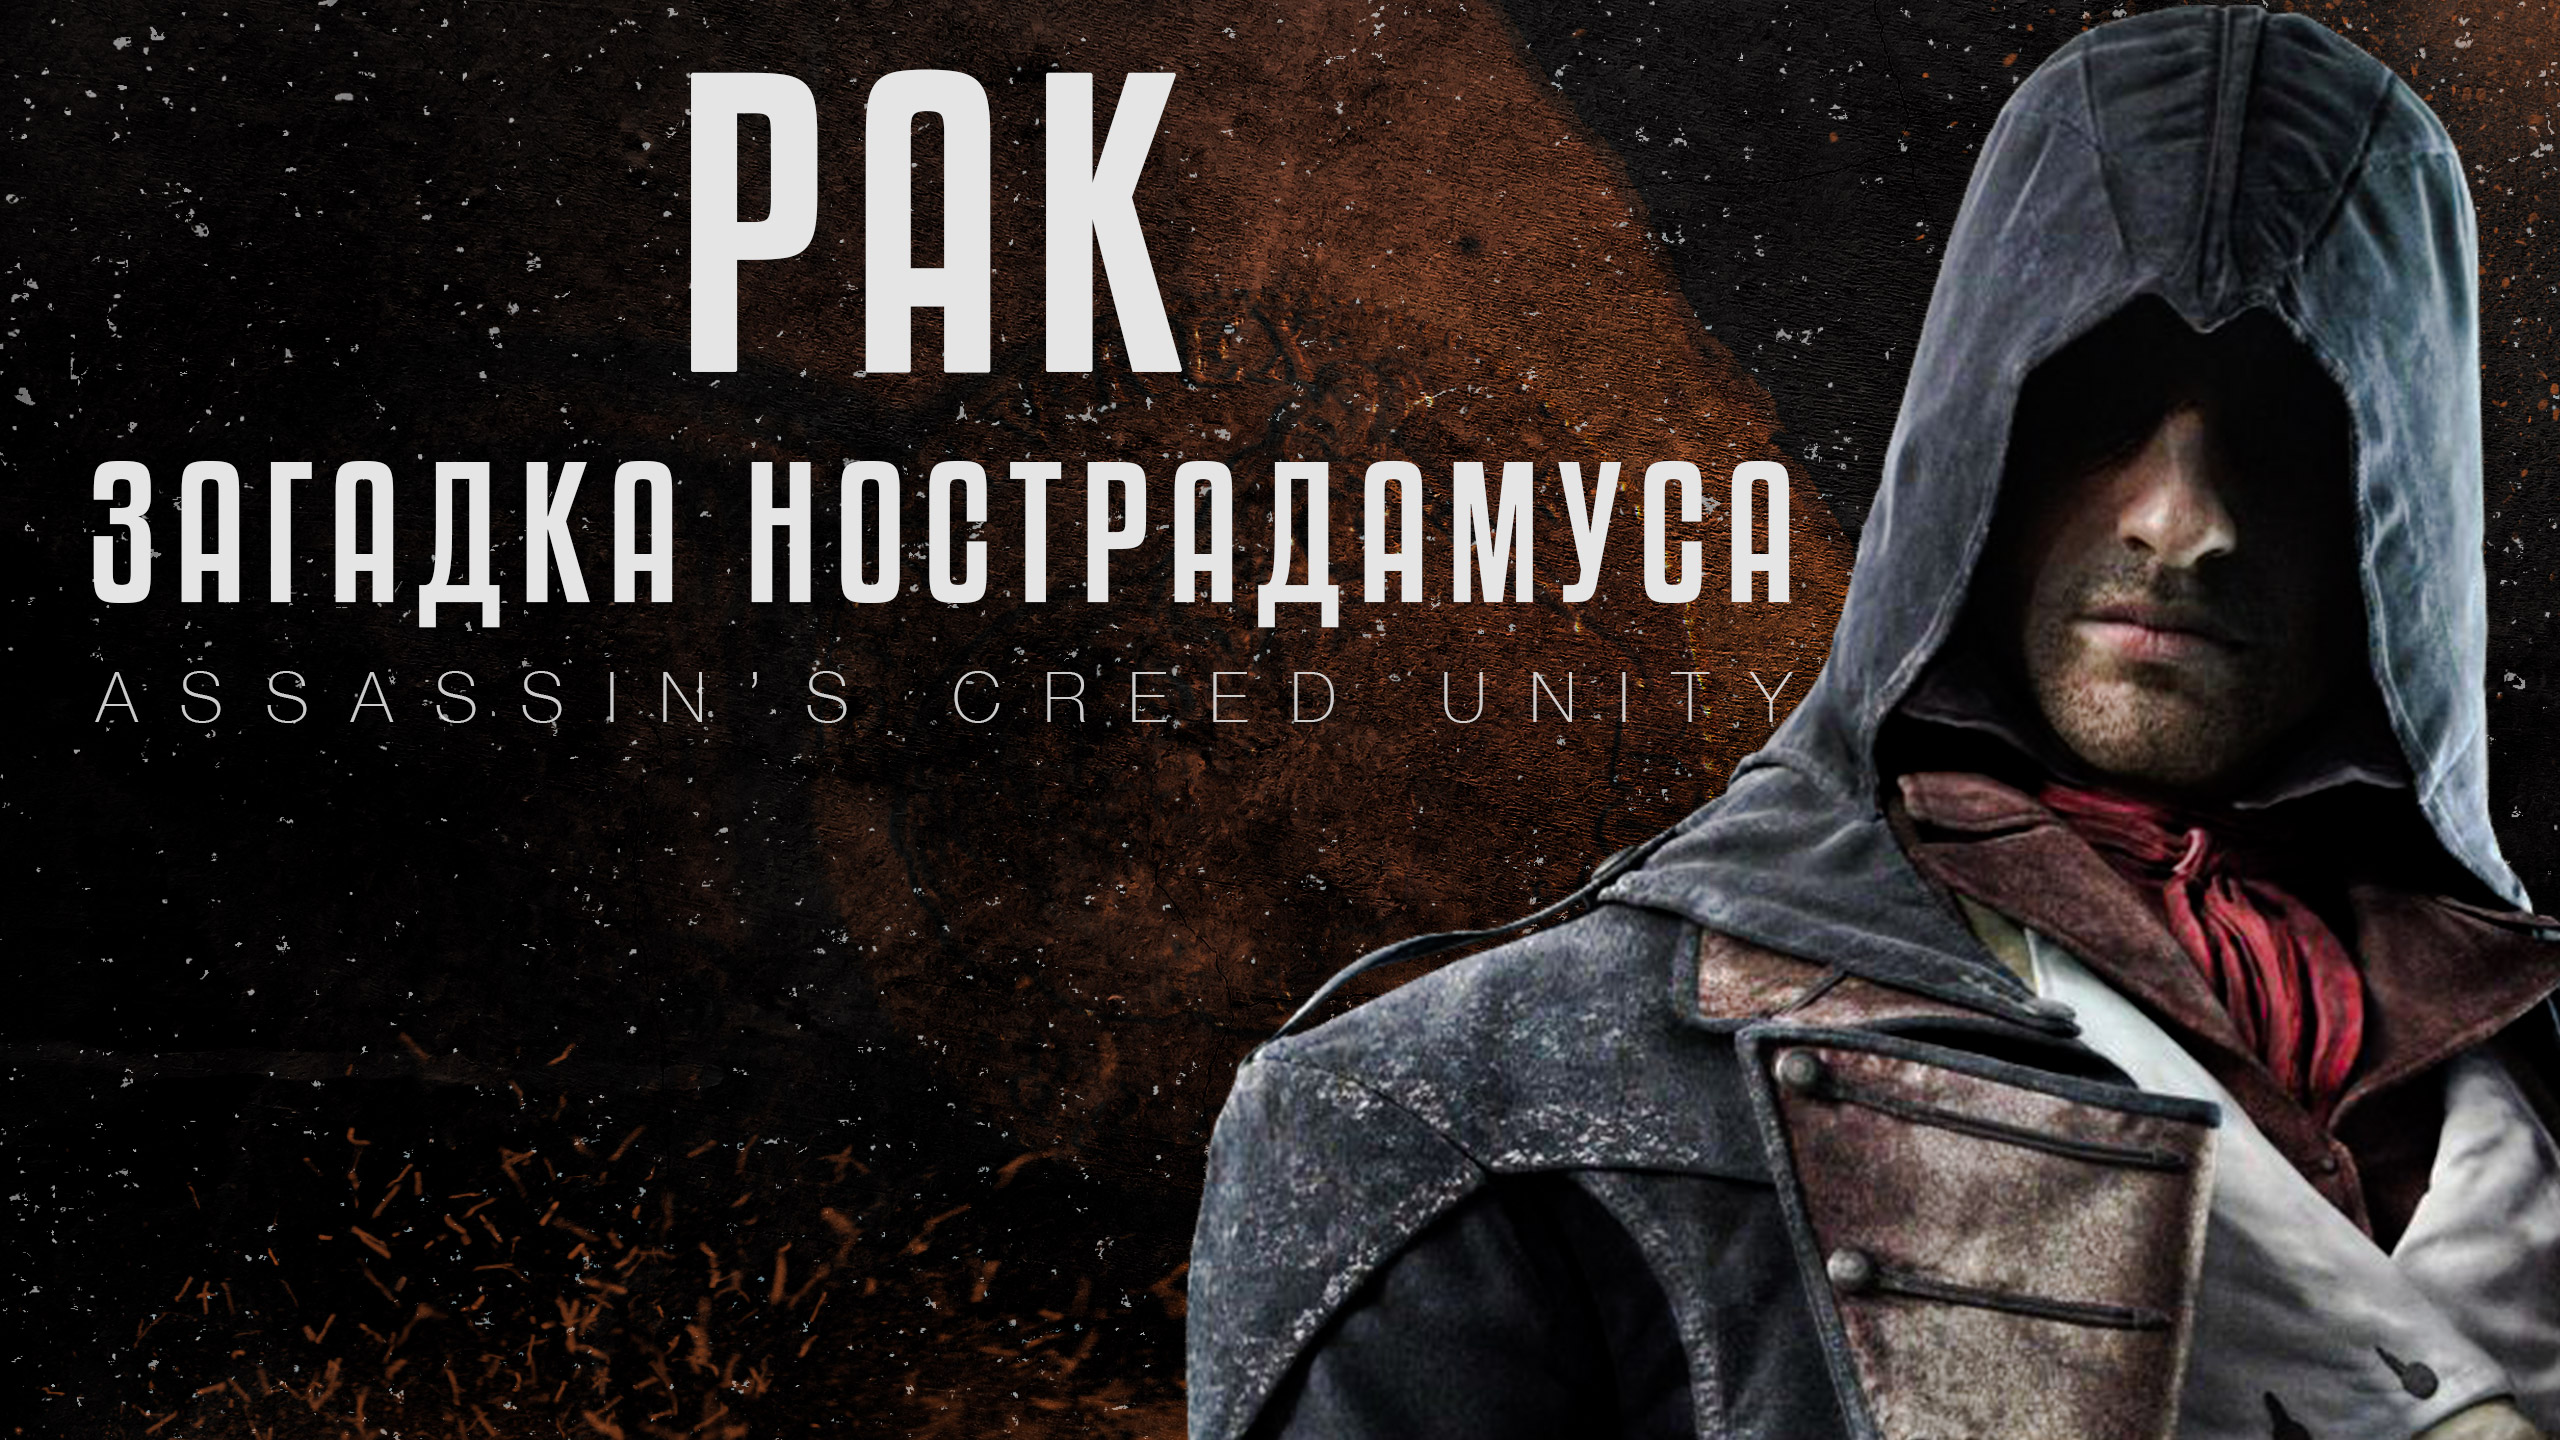 Нострадамус в игре Assassin's Creed Unity (Рак)